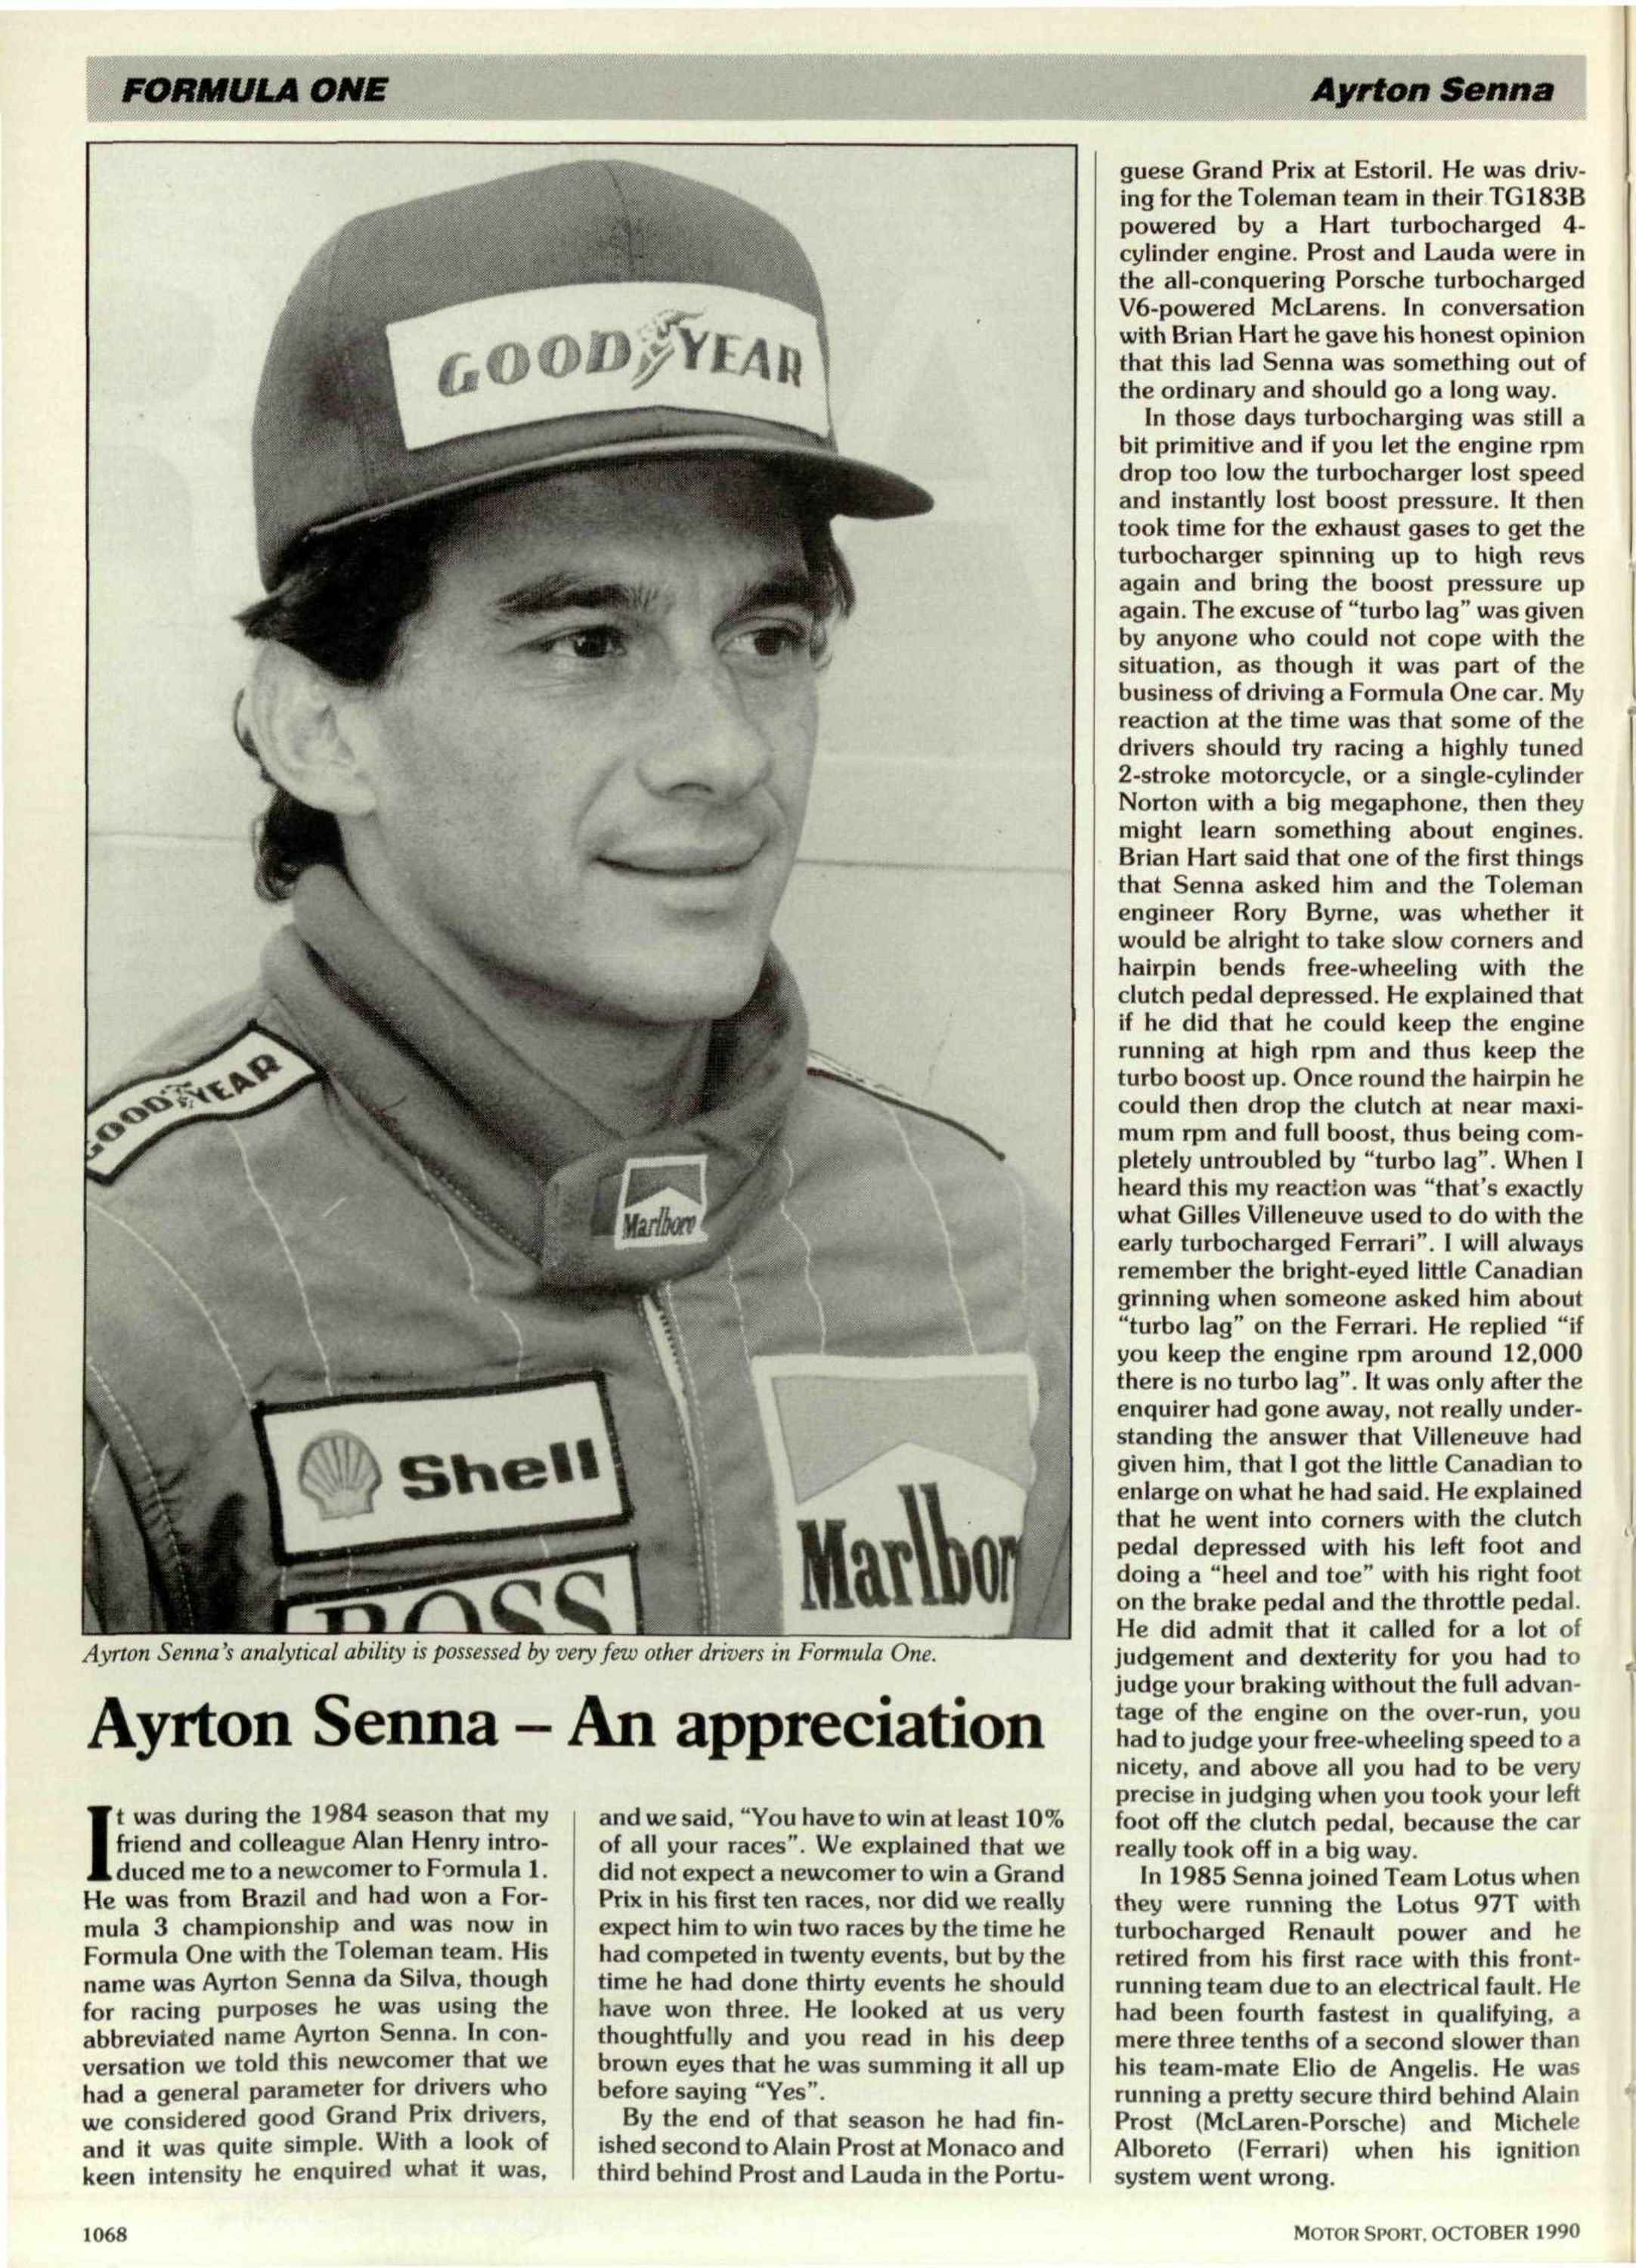 Ayrton Senna   An appreciation image